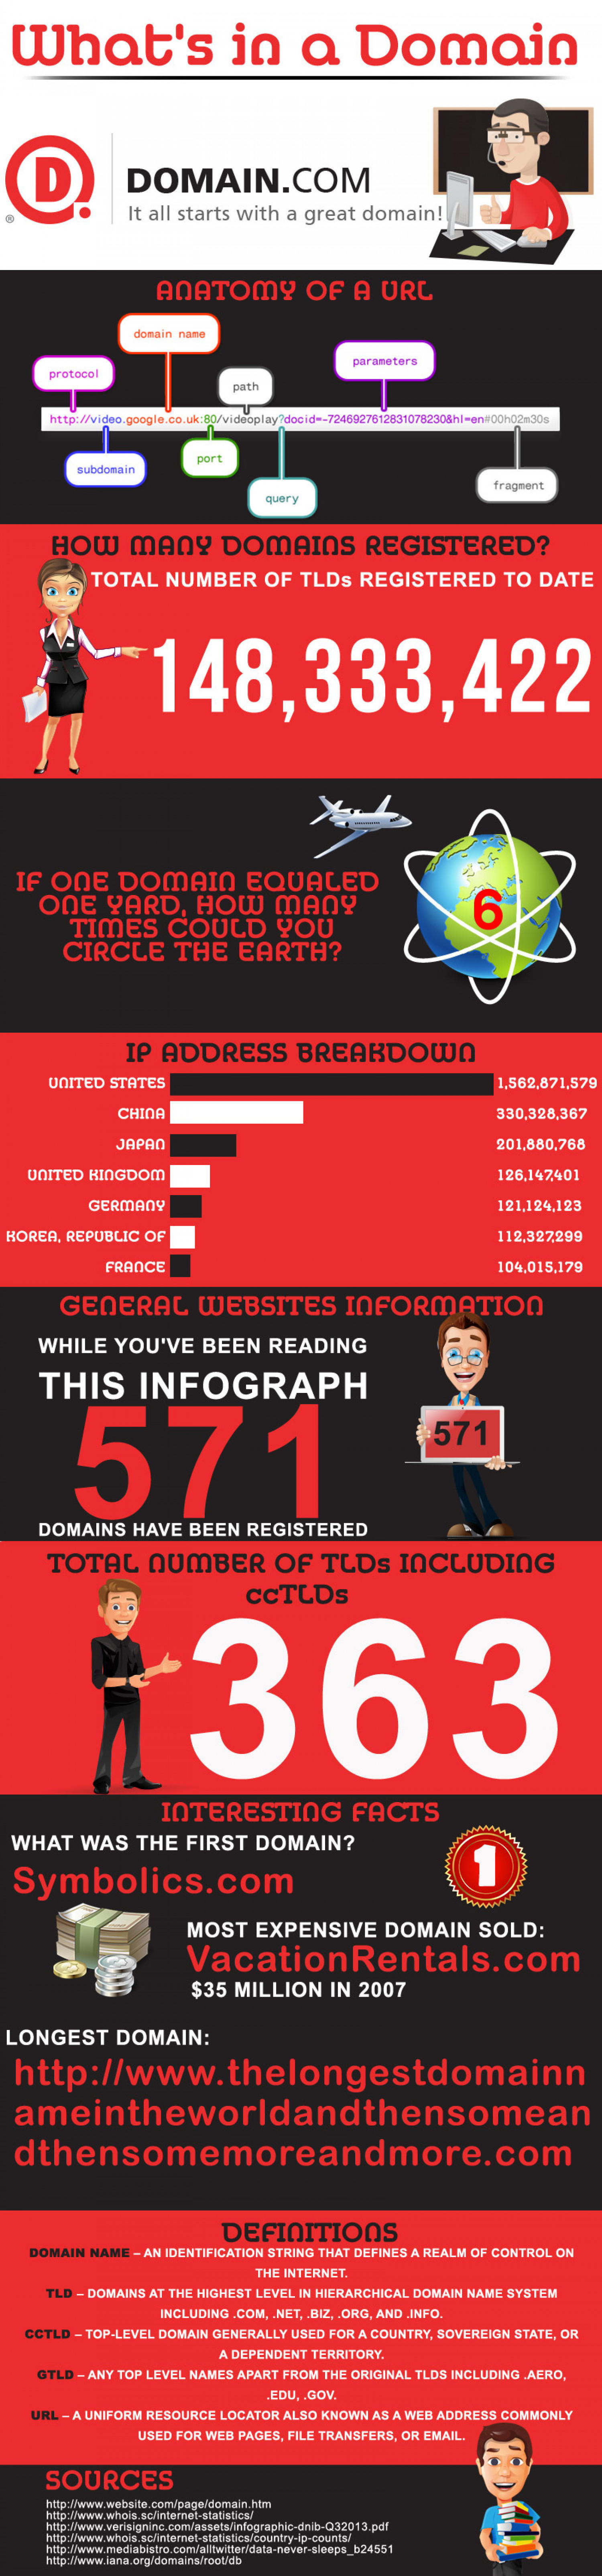 What's in a Domain?  Infographic